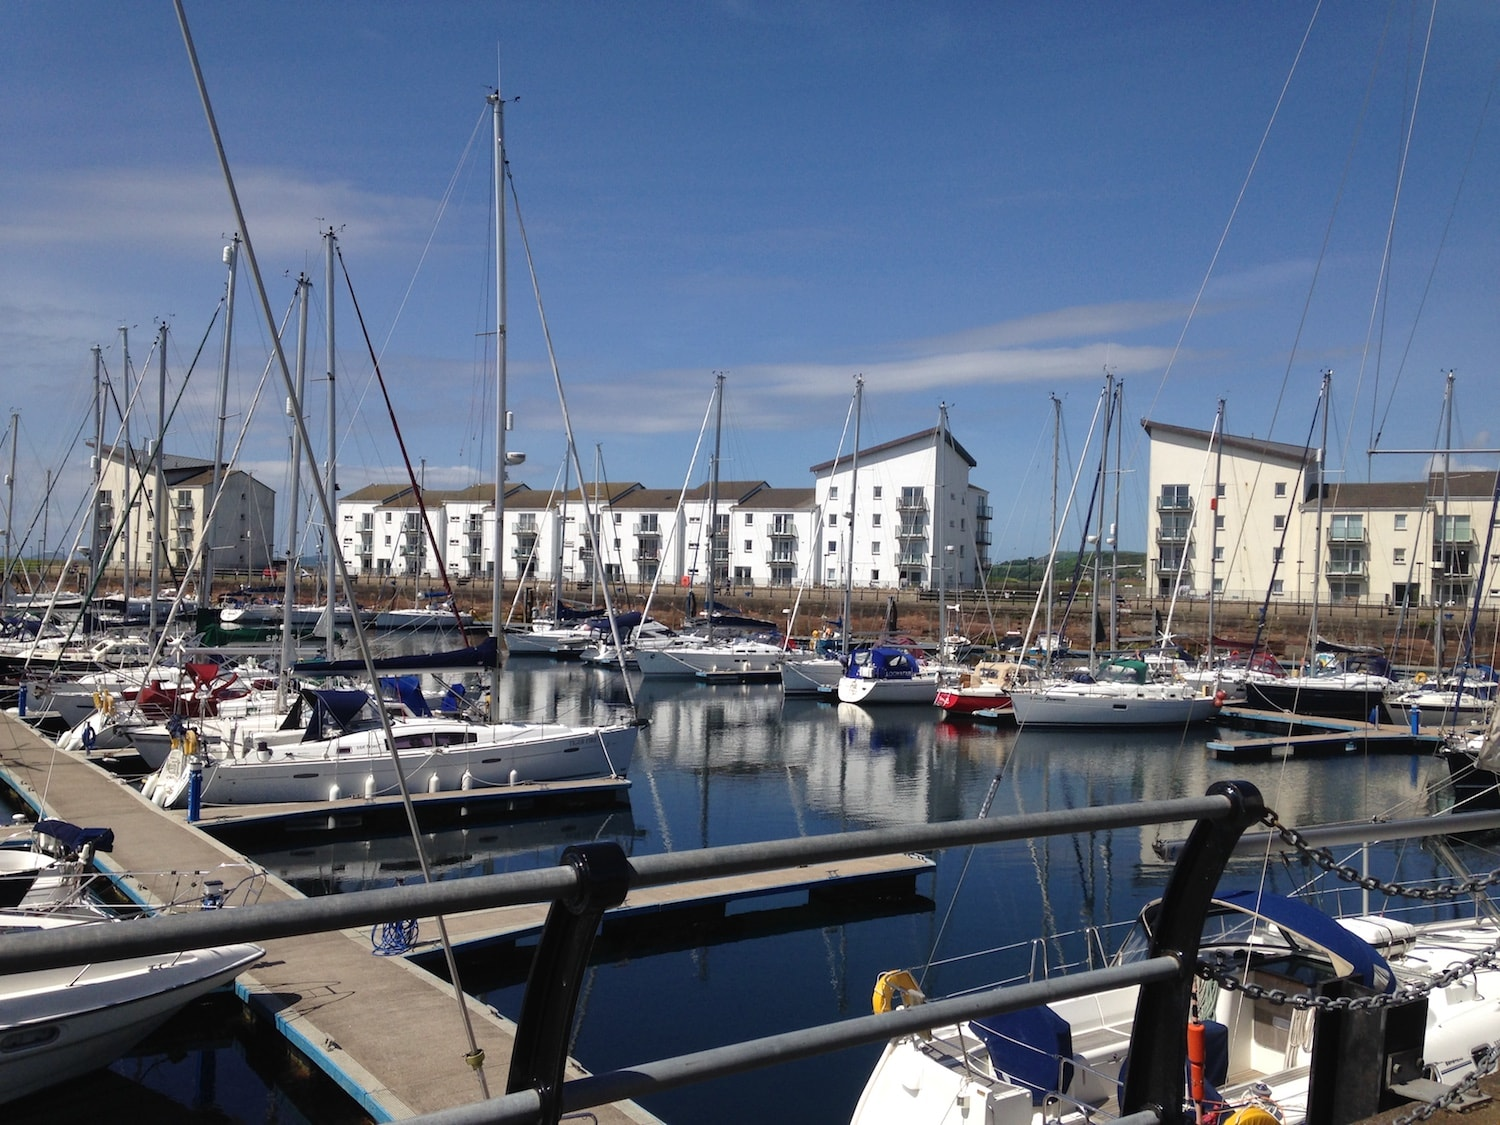 Eglinton Basin was once at the heart of thriving commercial docks, today it hosts a marina for up to 280 vessels.